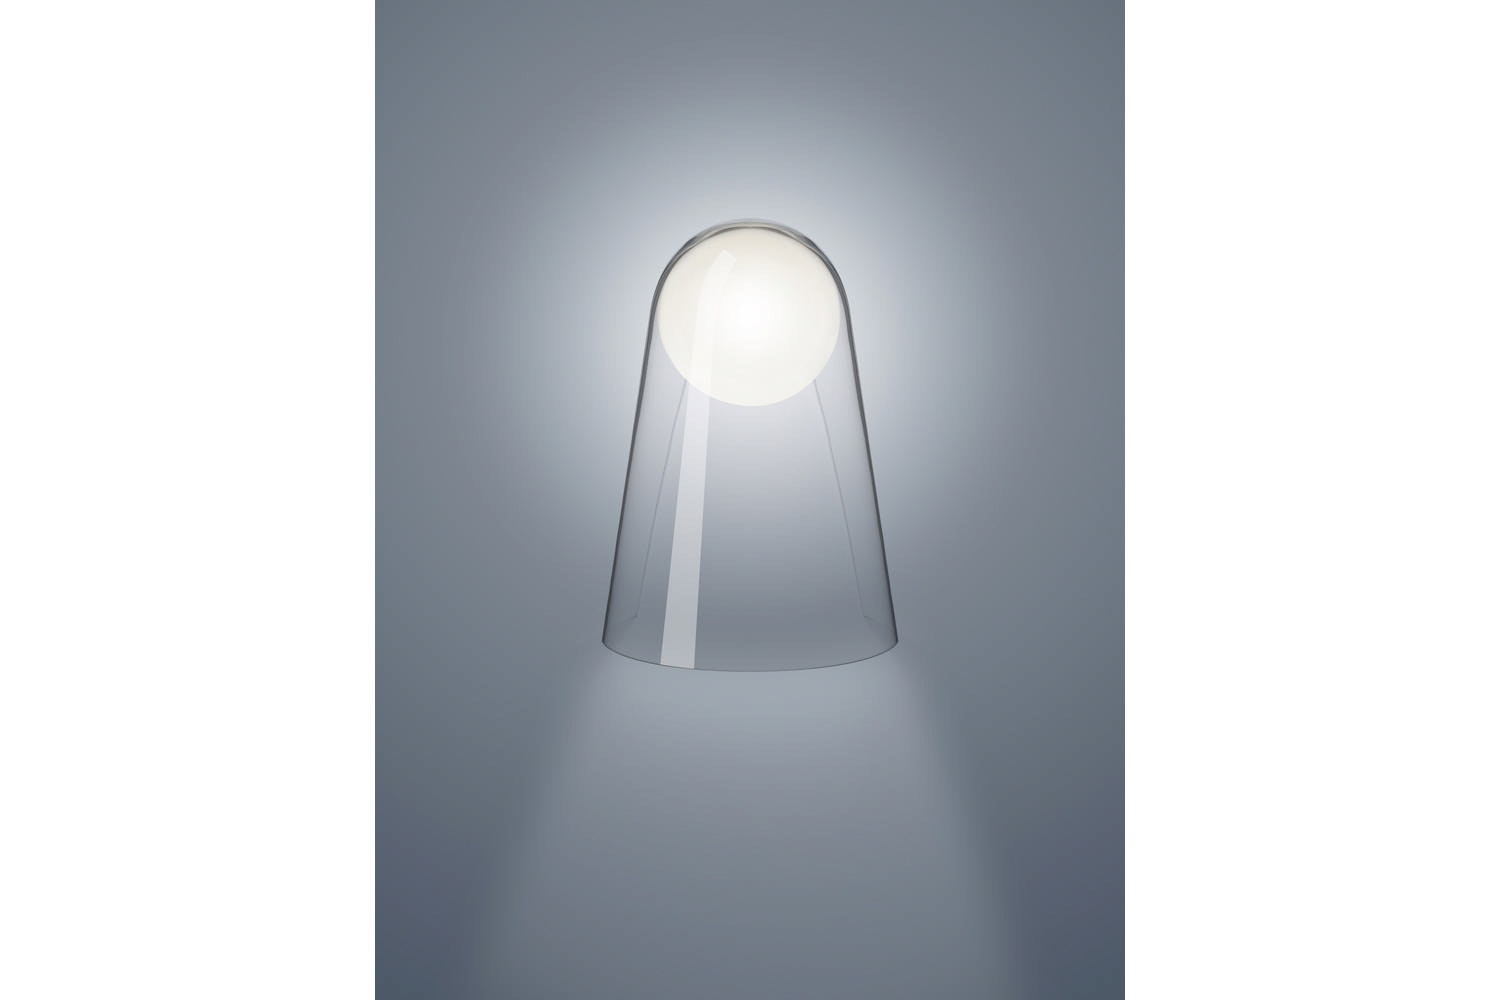 Satellight LED Dimmable Wall Lamp by Eugeni Quitllet for Foscarini